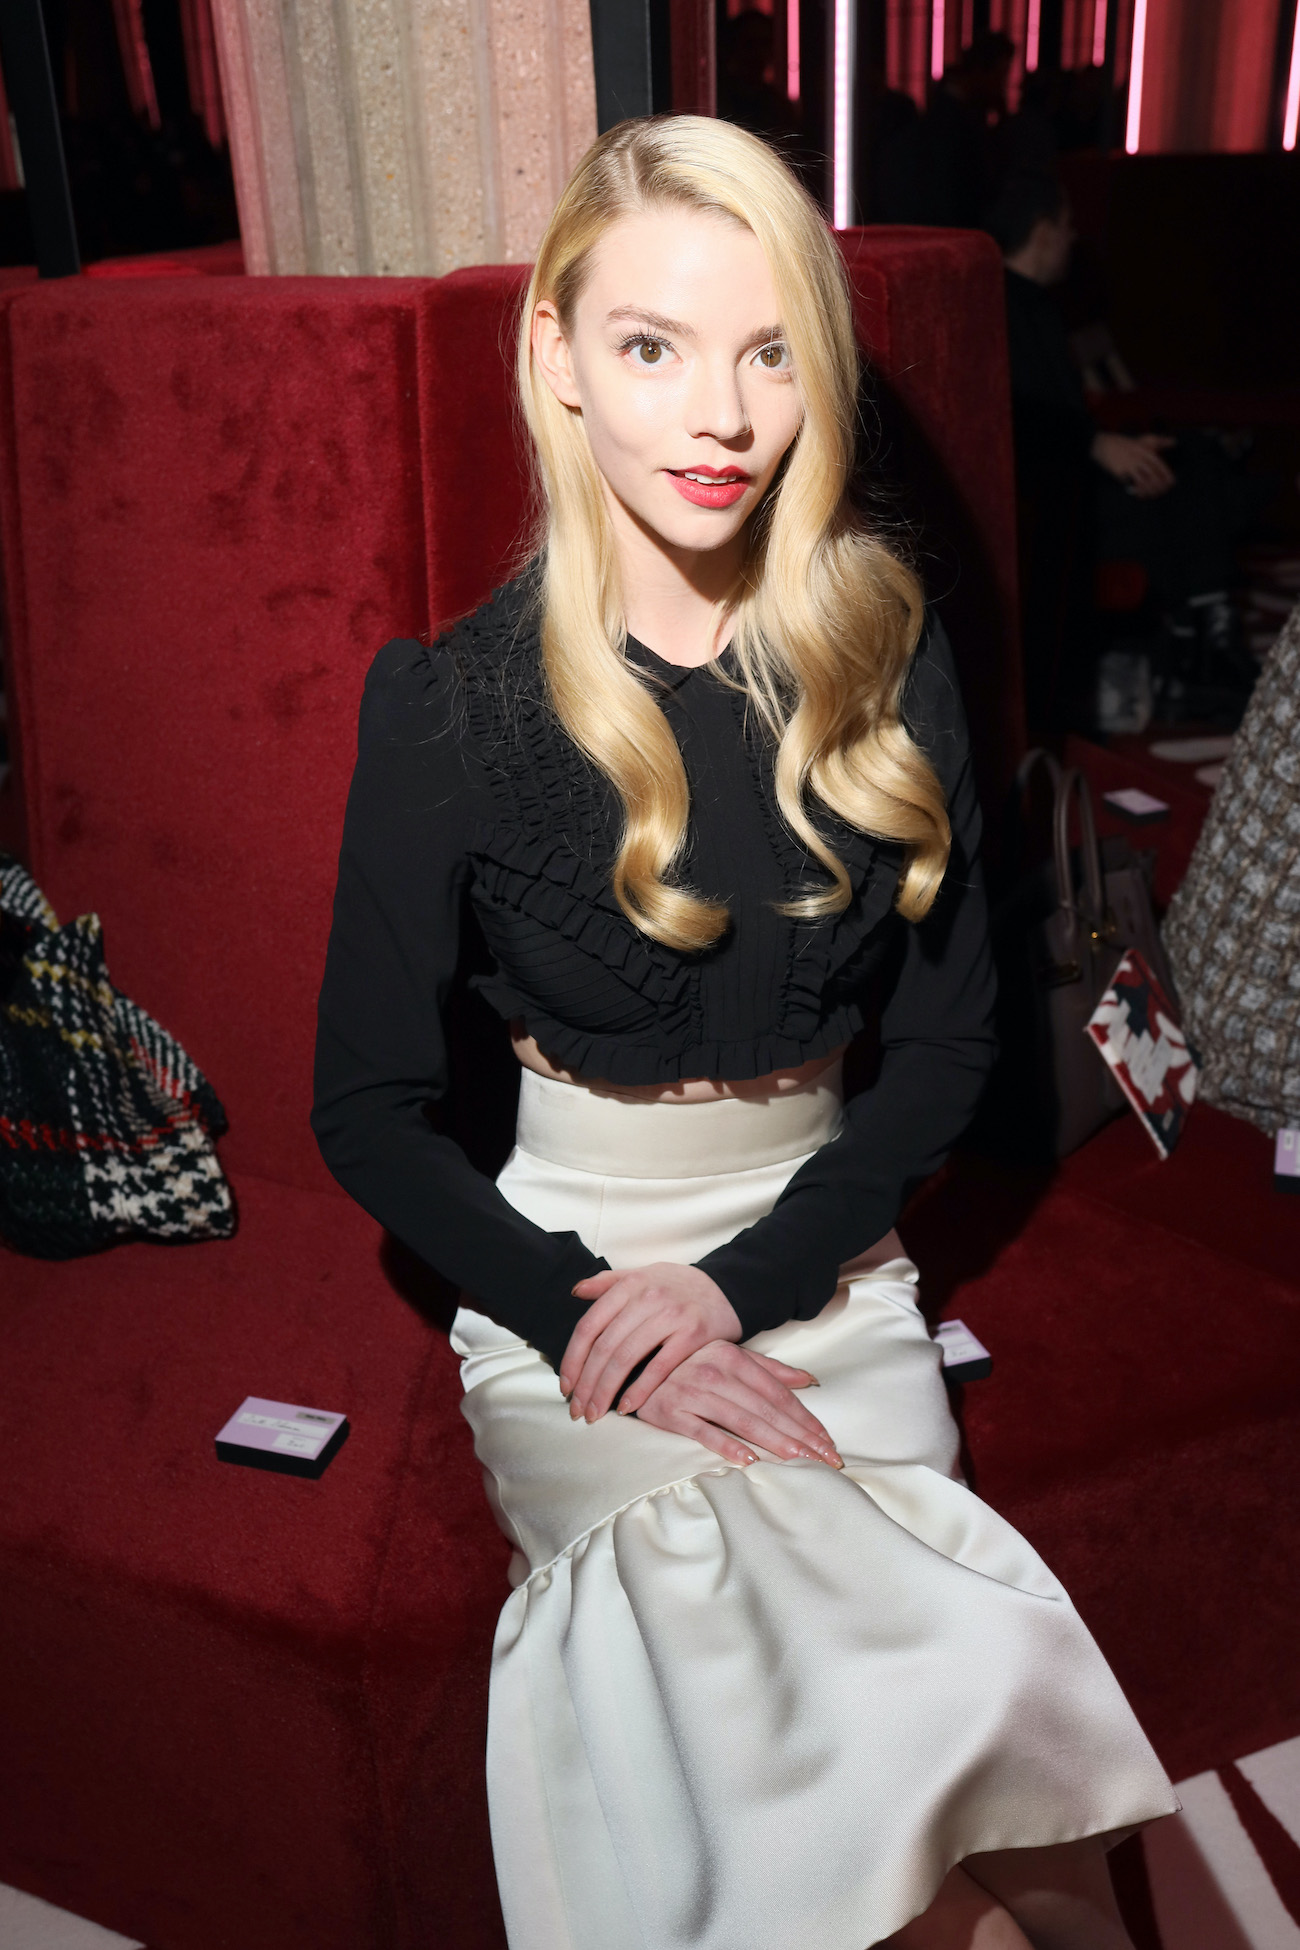 Anya Taylor Joy Will Star In A Twisted Dramatic Horror Following The Queen S Gambit